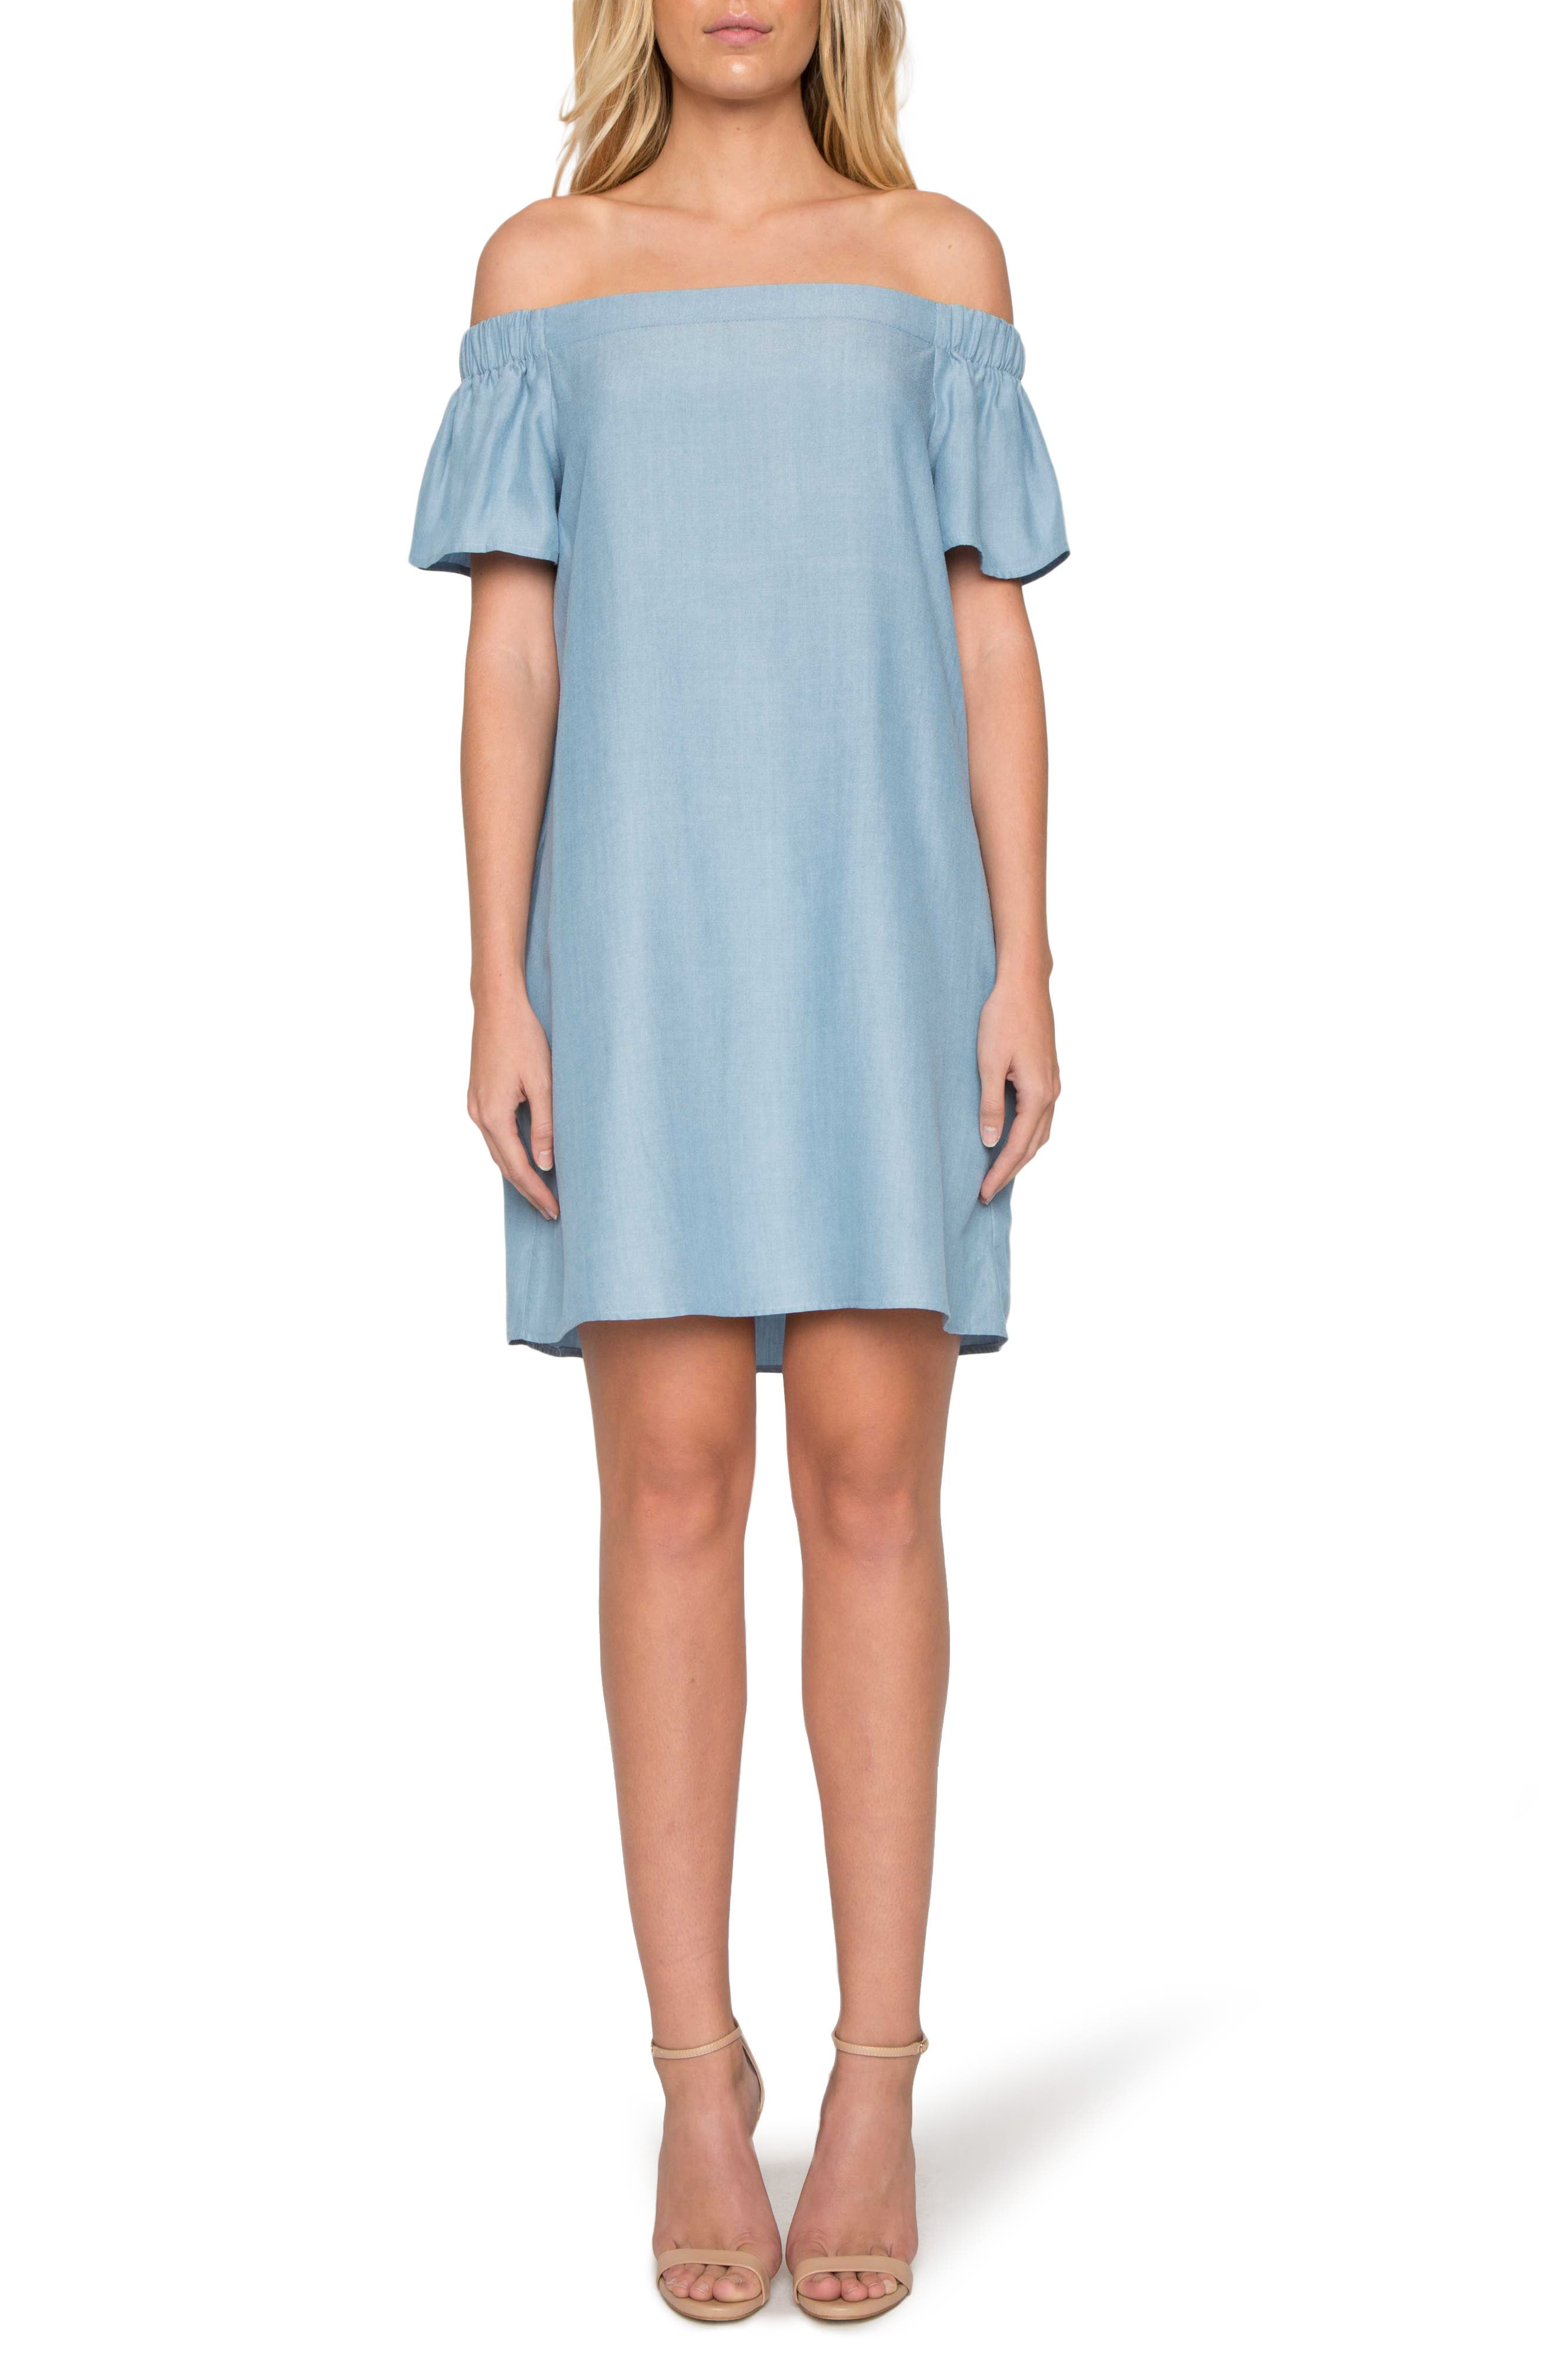 WILLOW & CLAY Off the Shoulder Minidress, Main, color, 453